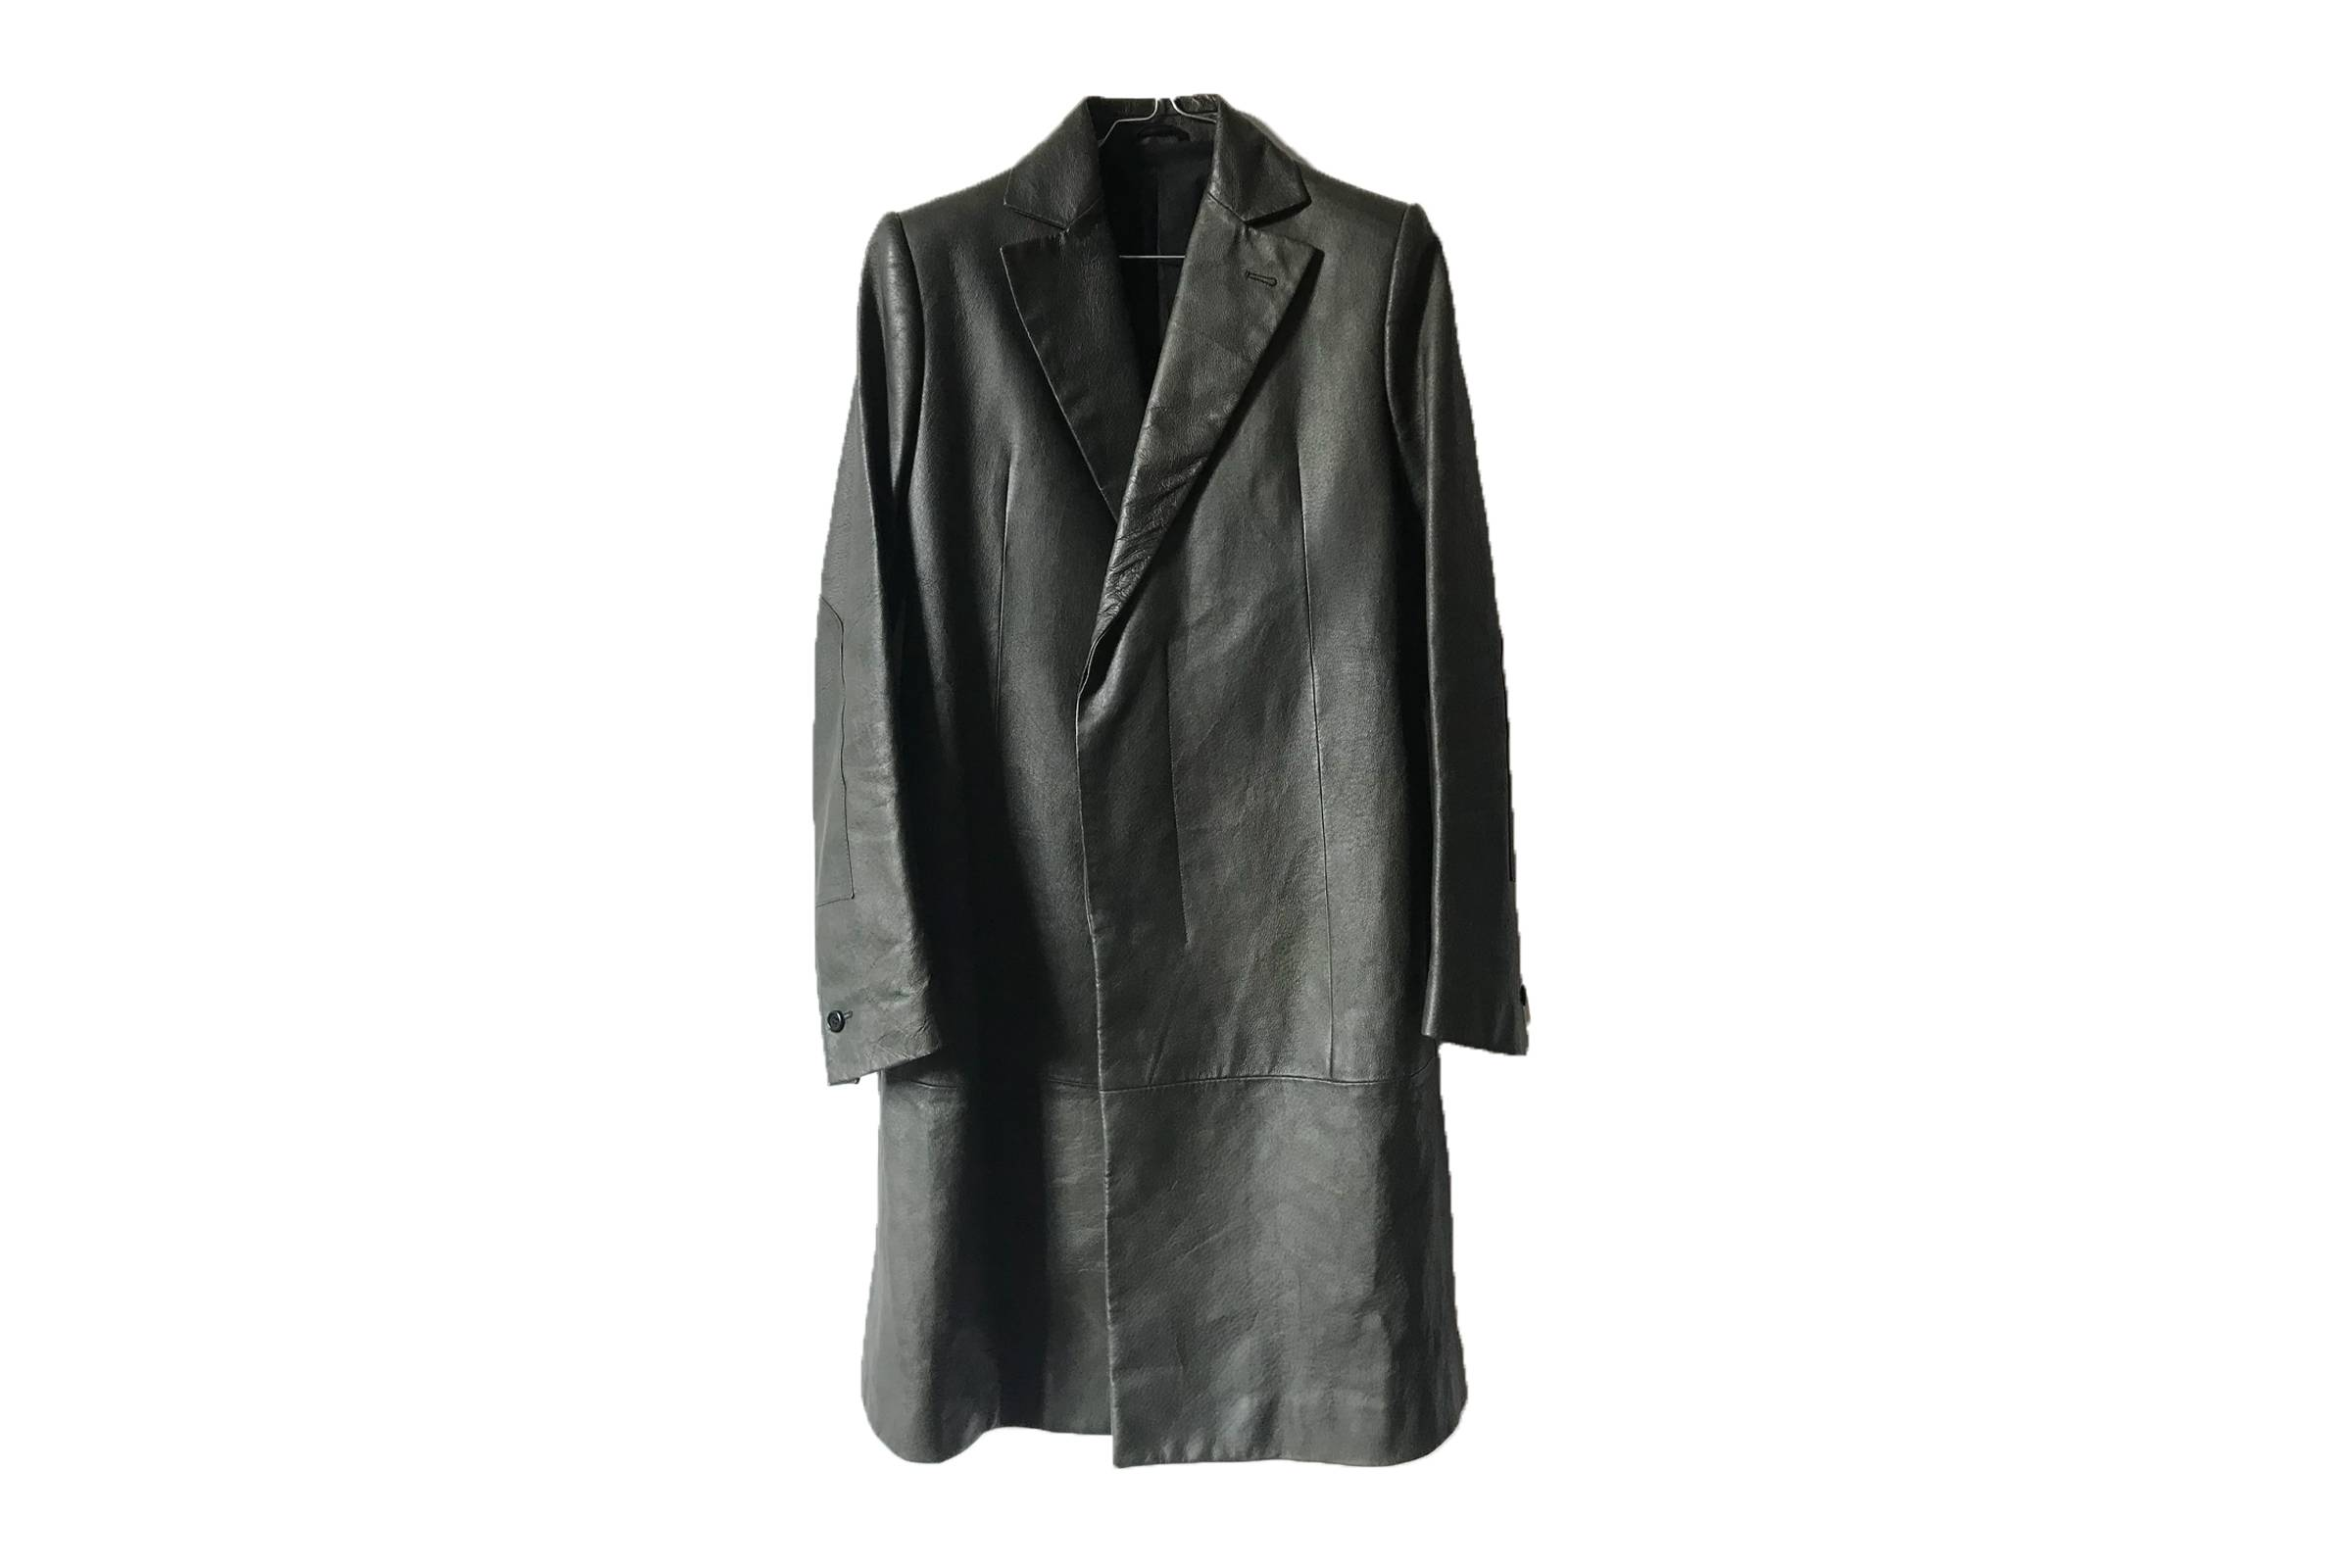 Carol Christian Poell Leather Trench Coat